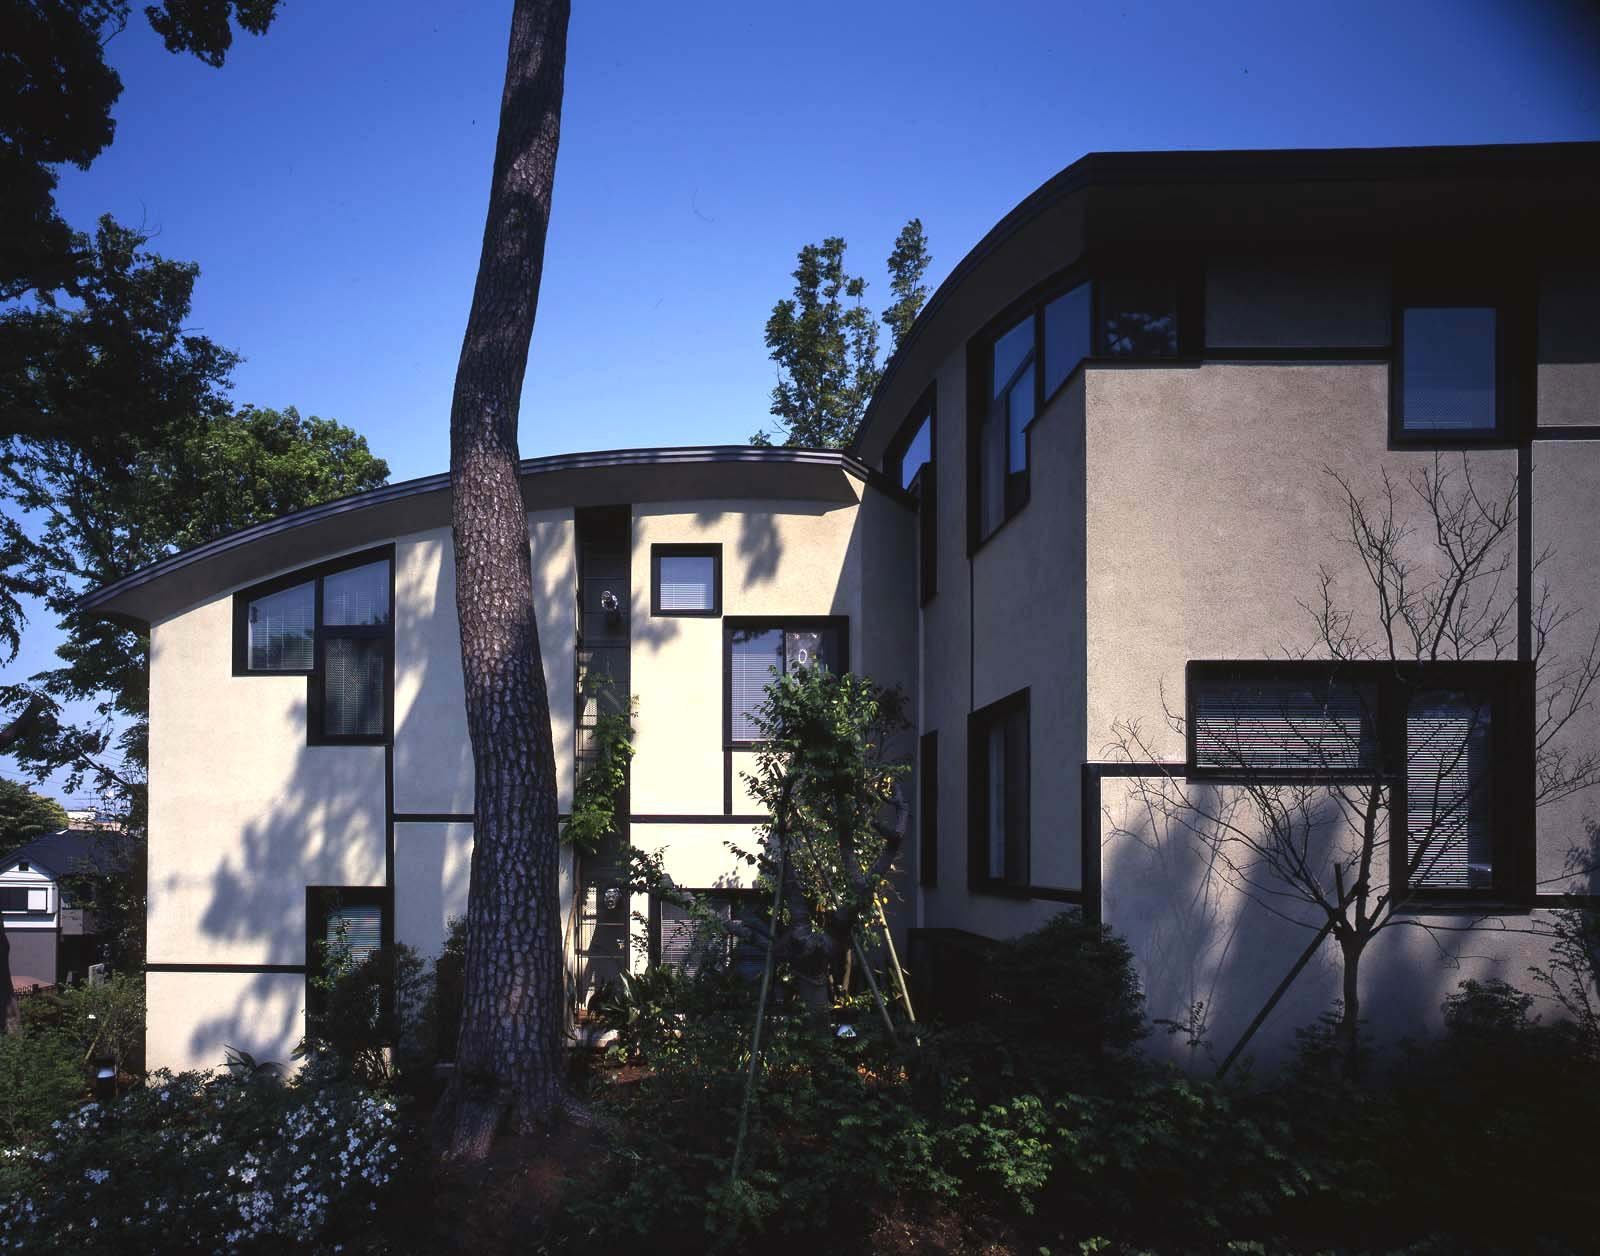 Oak Terrace(1997) photo: Nacasa & Partners Inc.